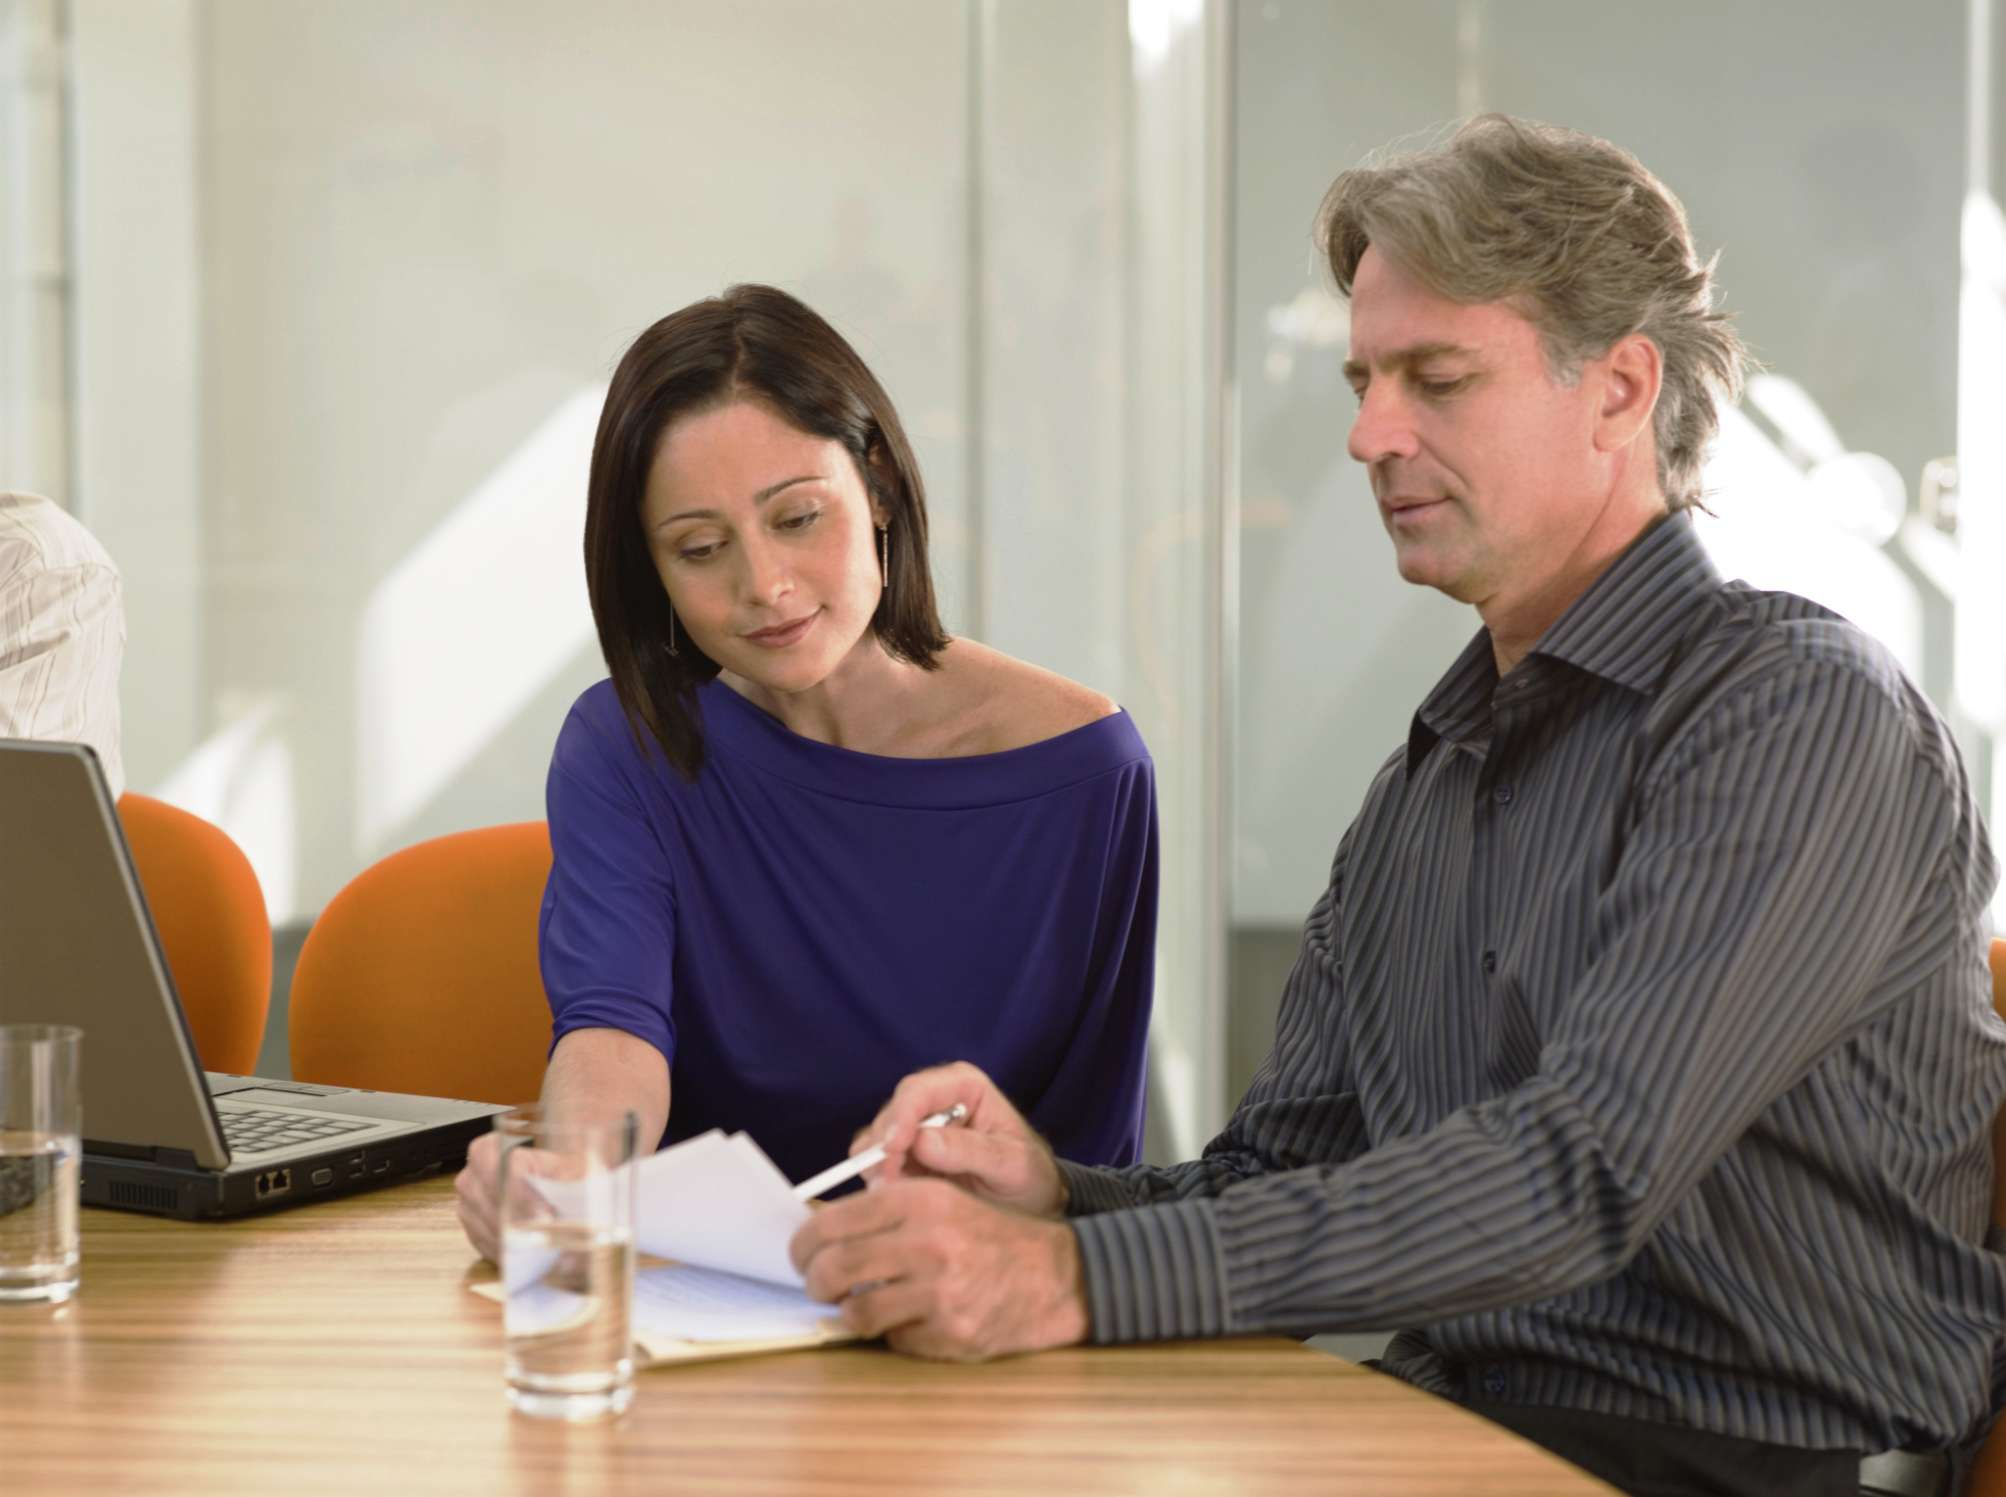 Woman delegating tasks to a man from a notebook